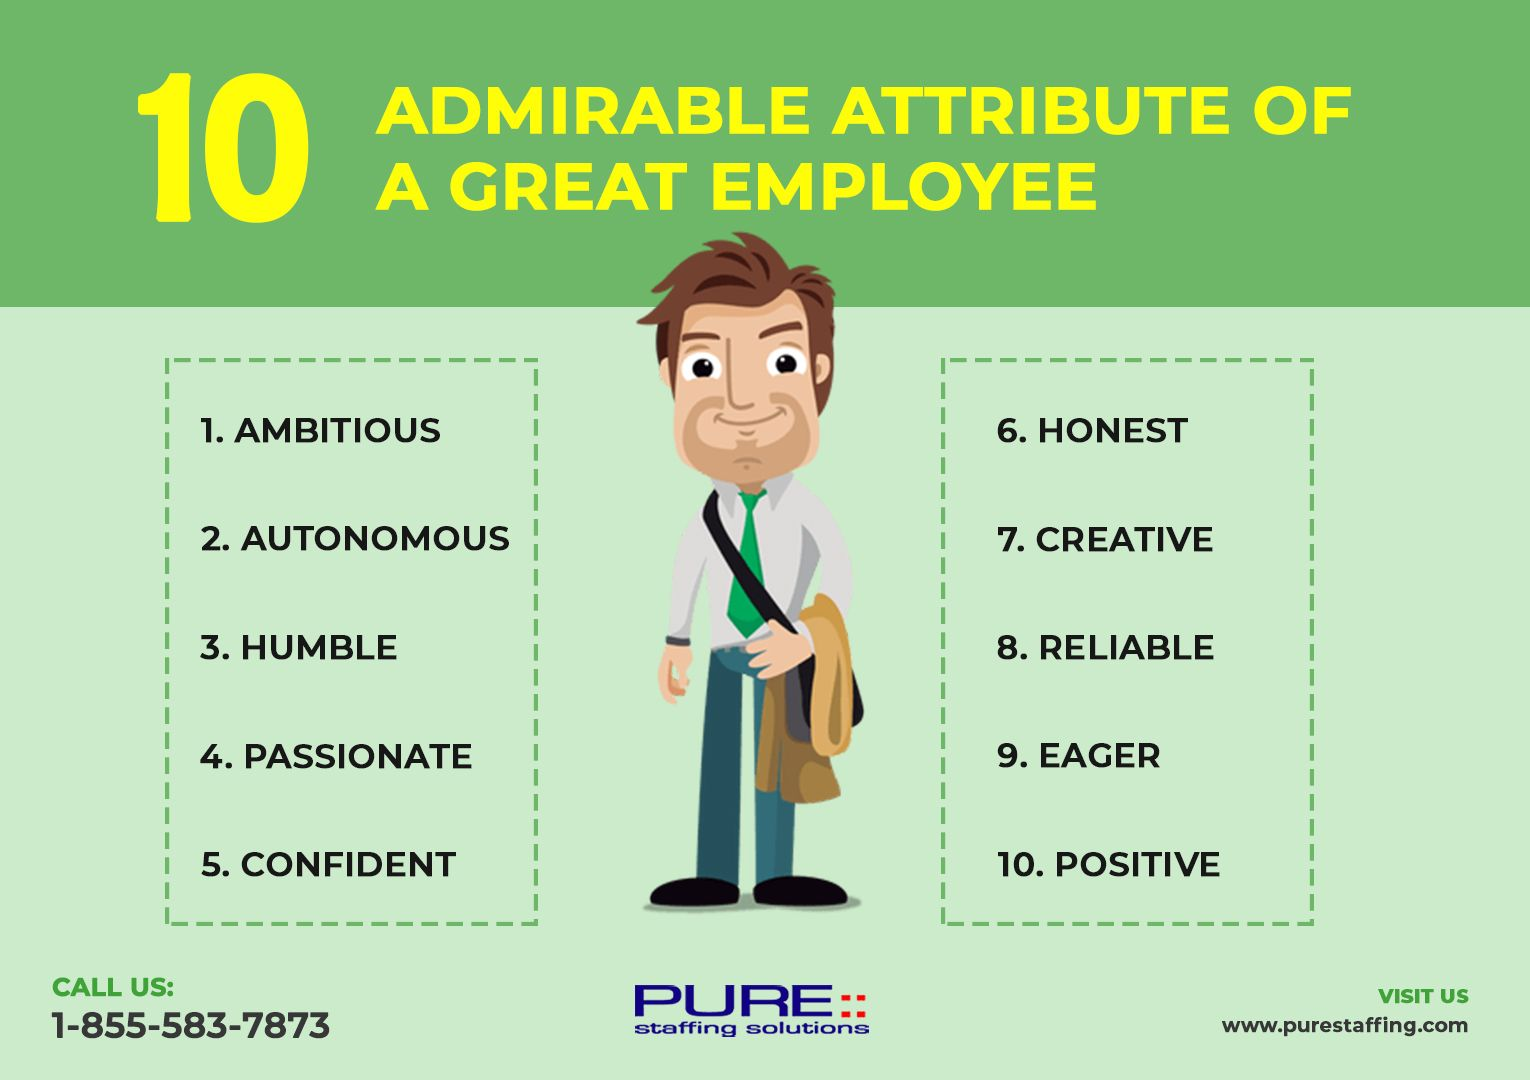 10 Admirable Attribute of a Great Employee Visit us https